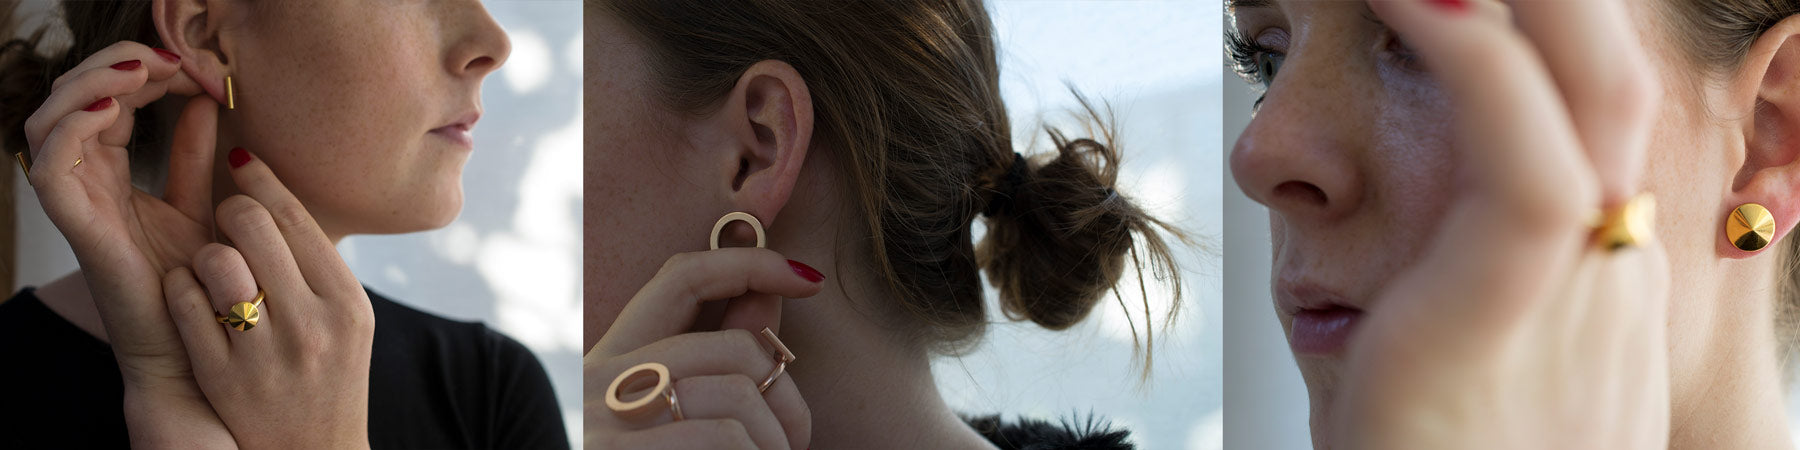 minimal jewellery | graphic earrings | designer earrings | valentines gifts for her